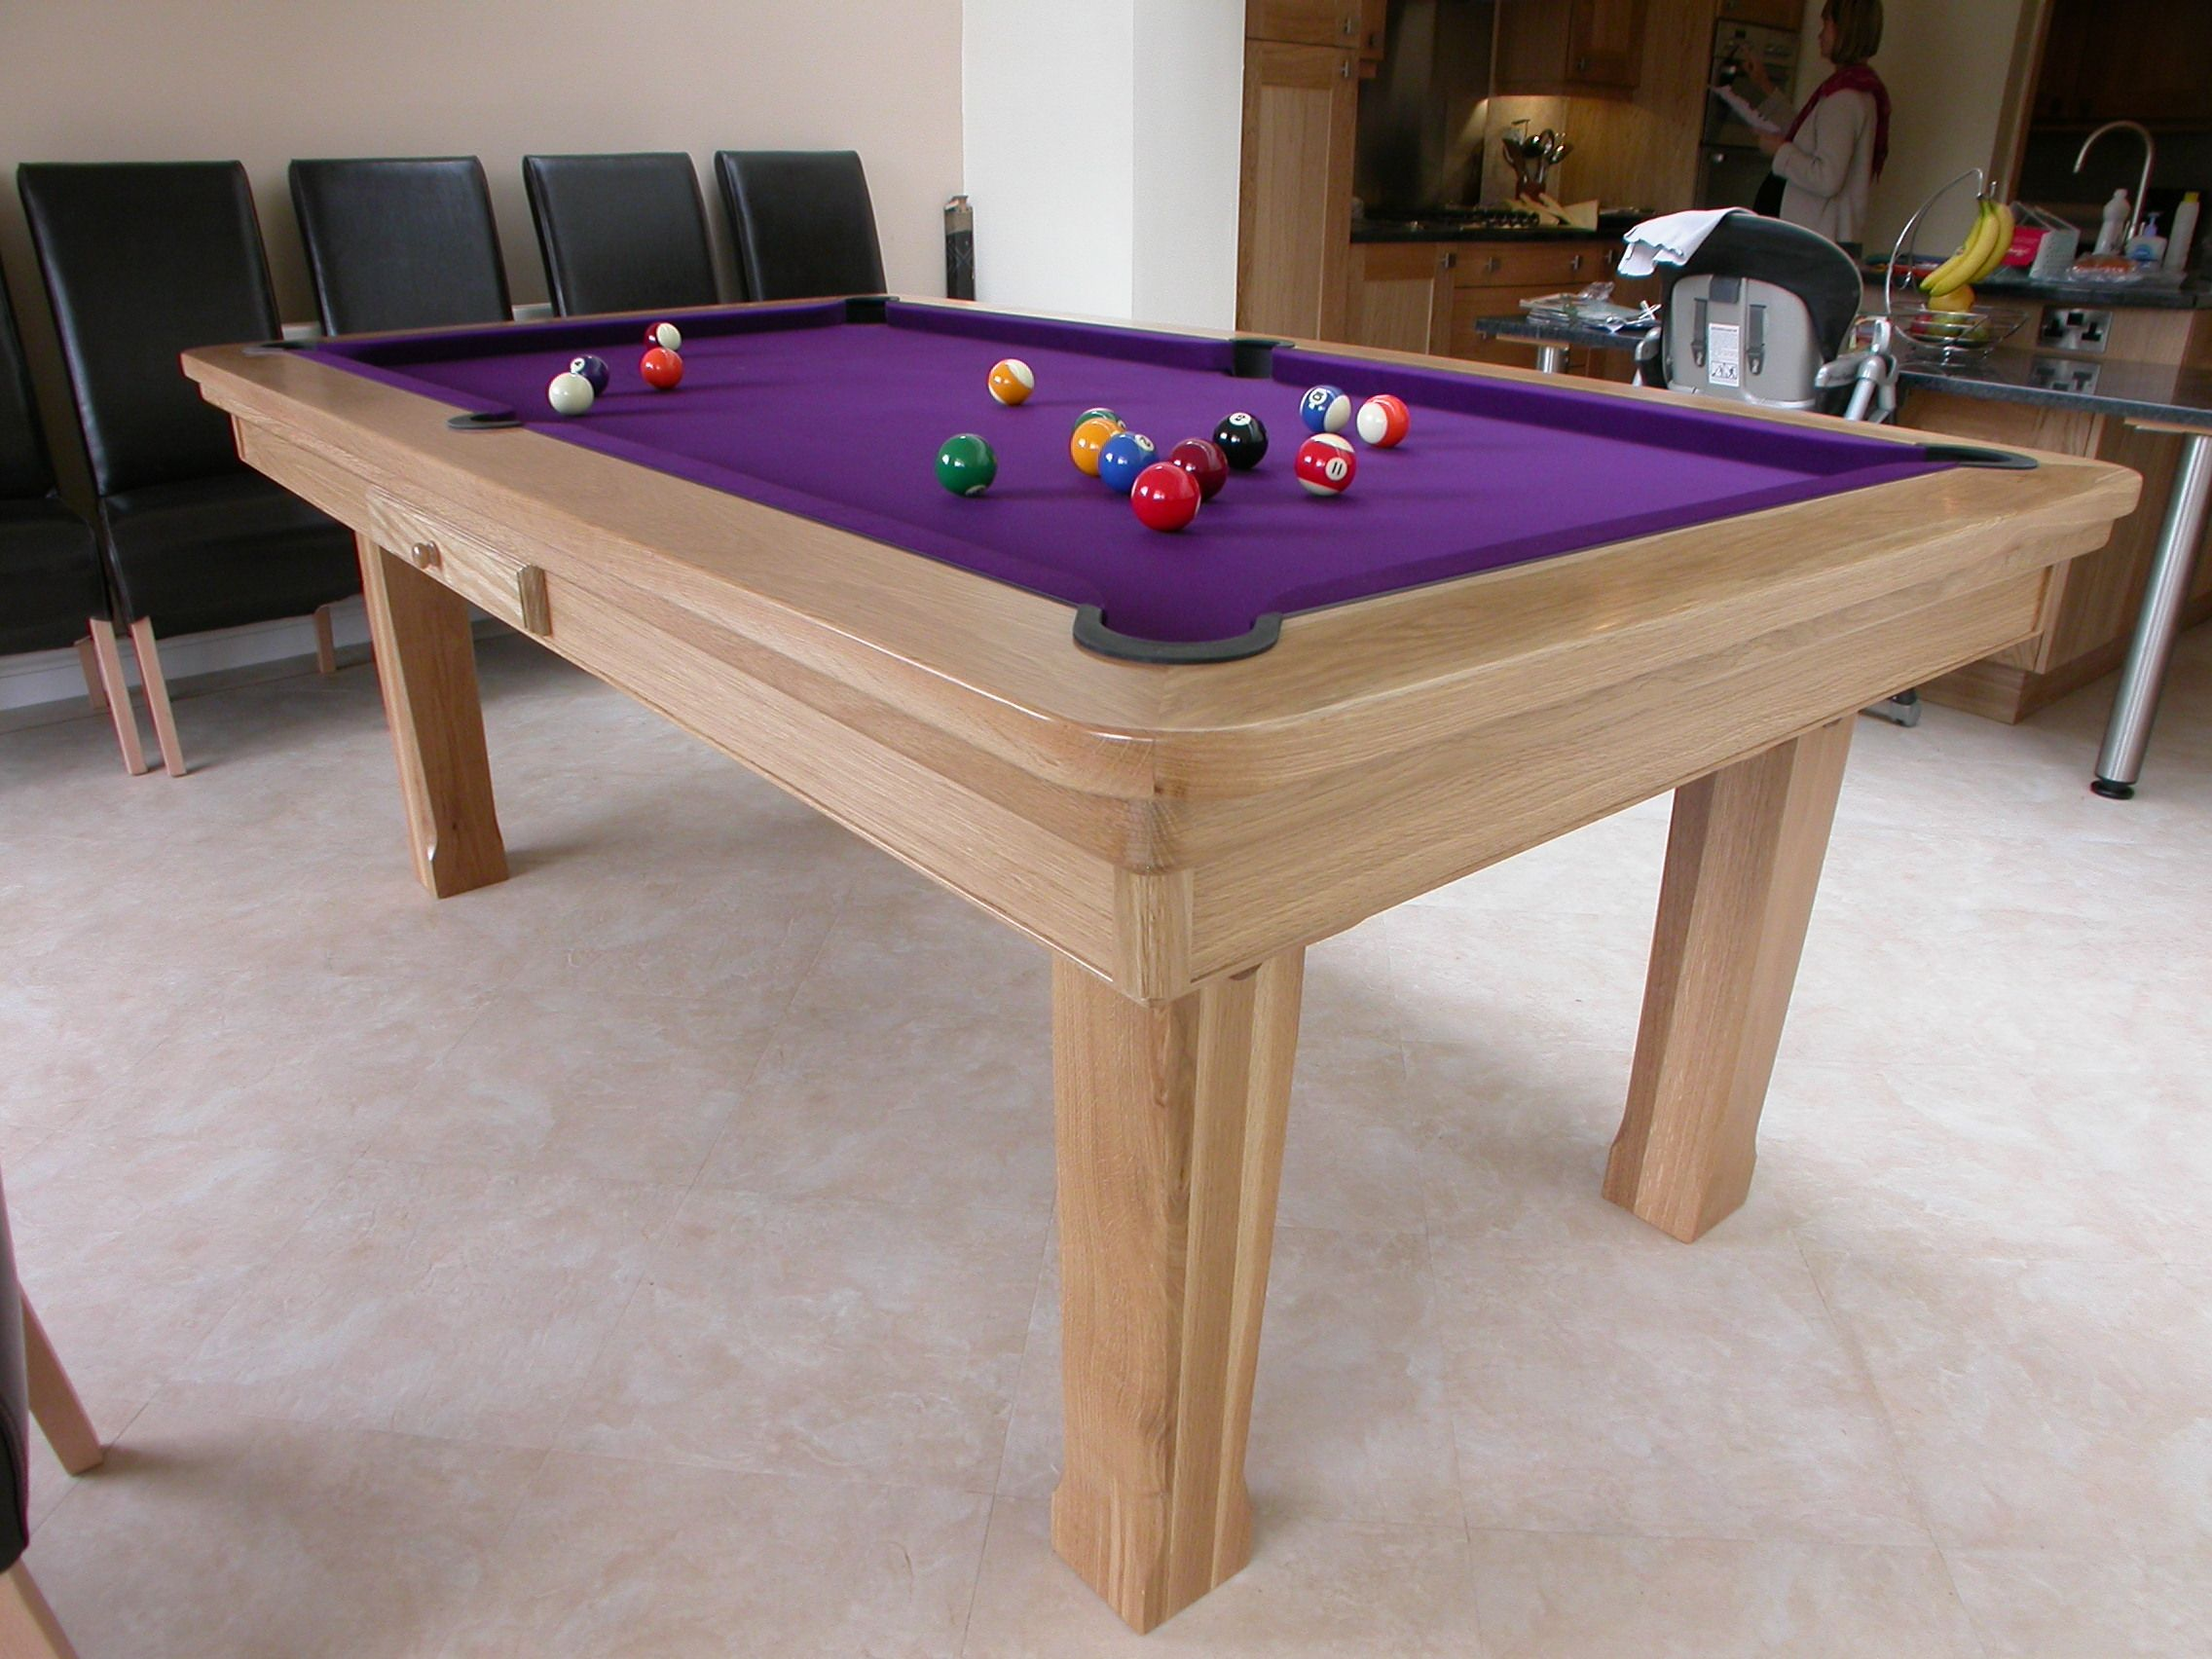 Beau Accessories U0026 Furniture, Fabulous Multifunction Pool Table Design With Oak  Wood Material On Combined Cool